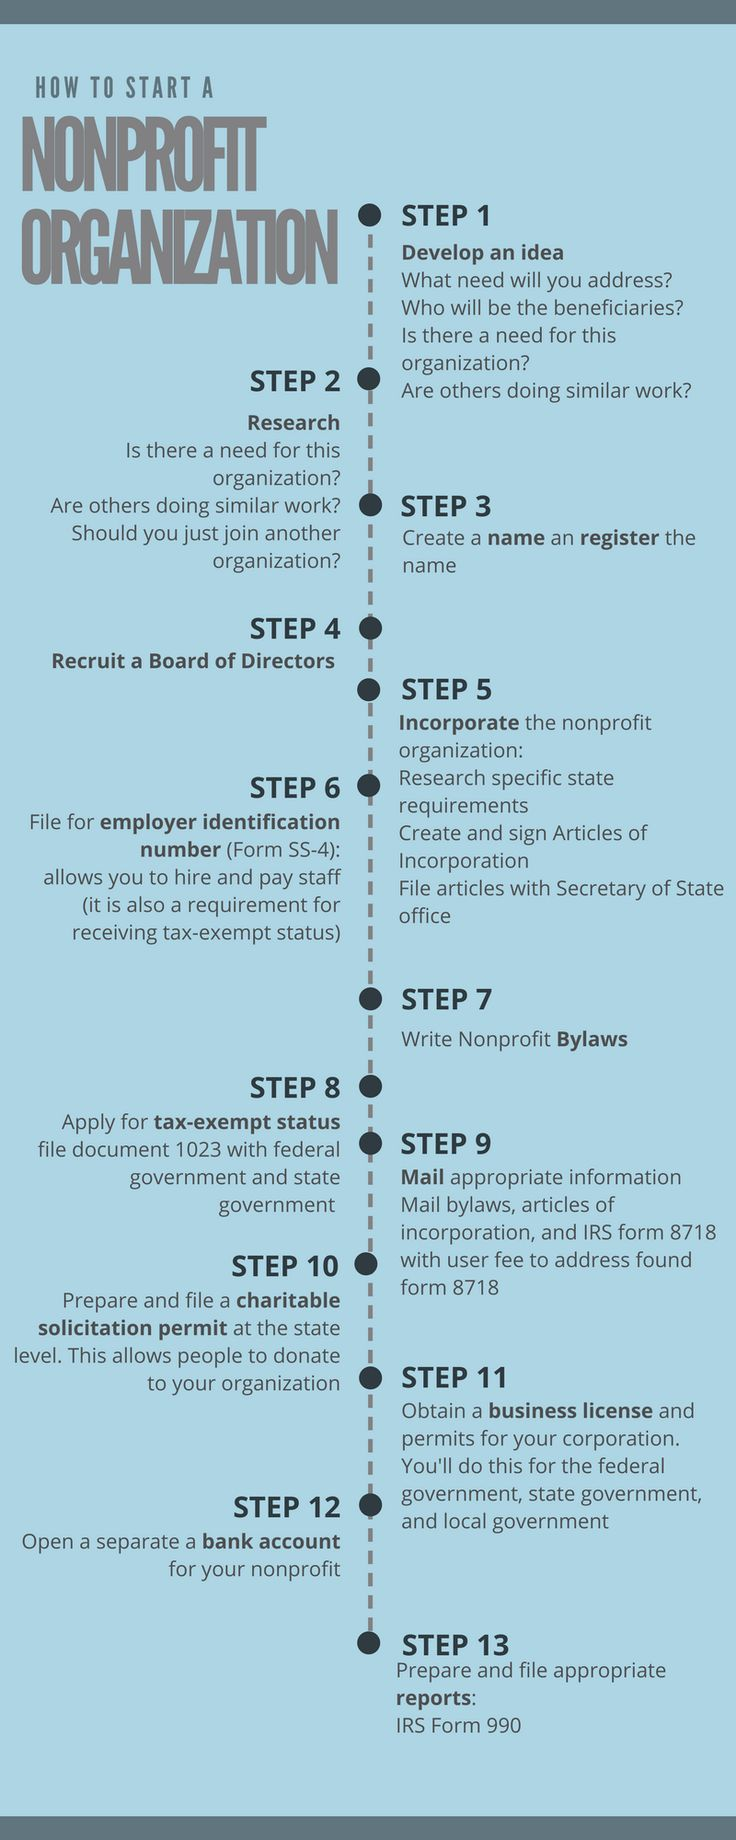 Looking to start a Nonprofit Organization? Here is a checklist of steps to form your nonprofit organization from start to finish!